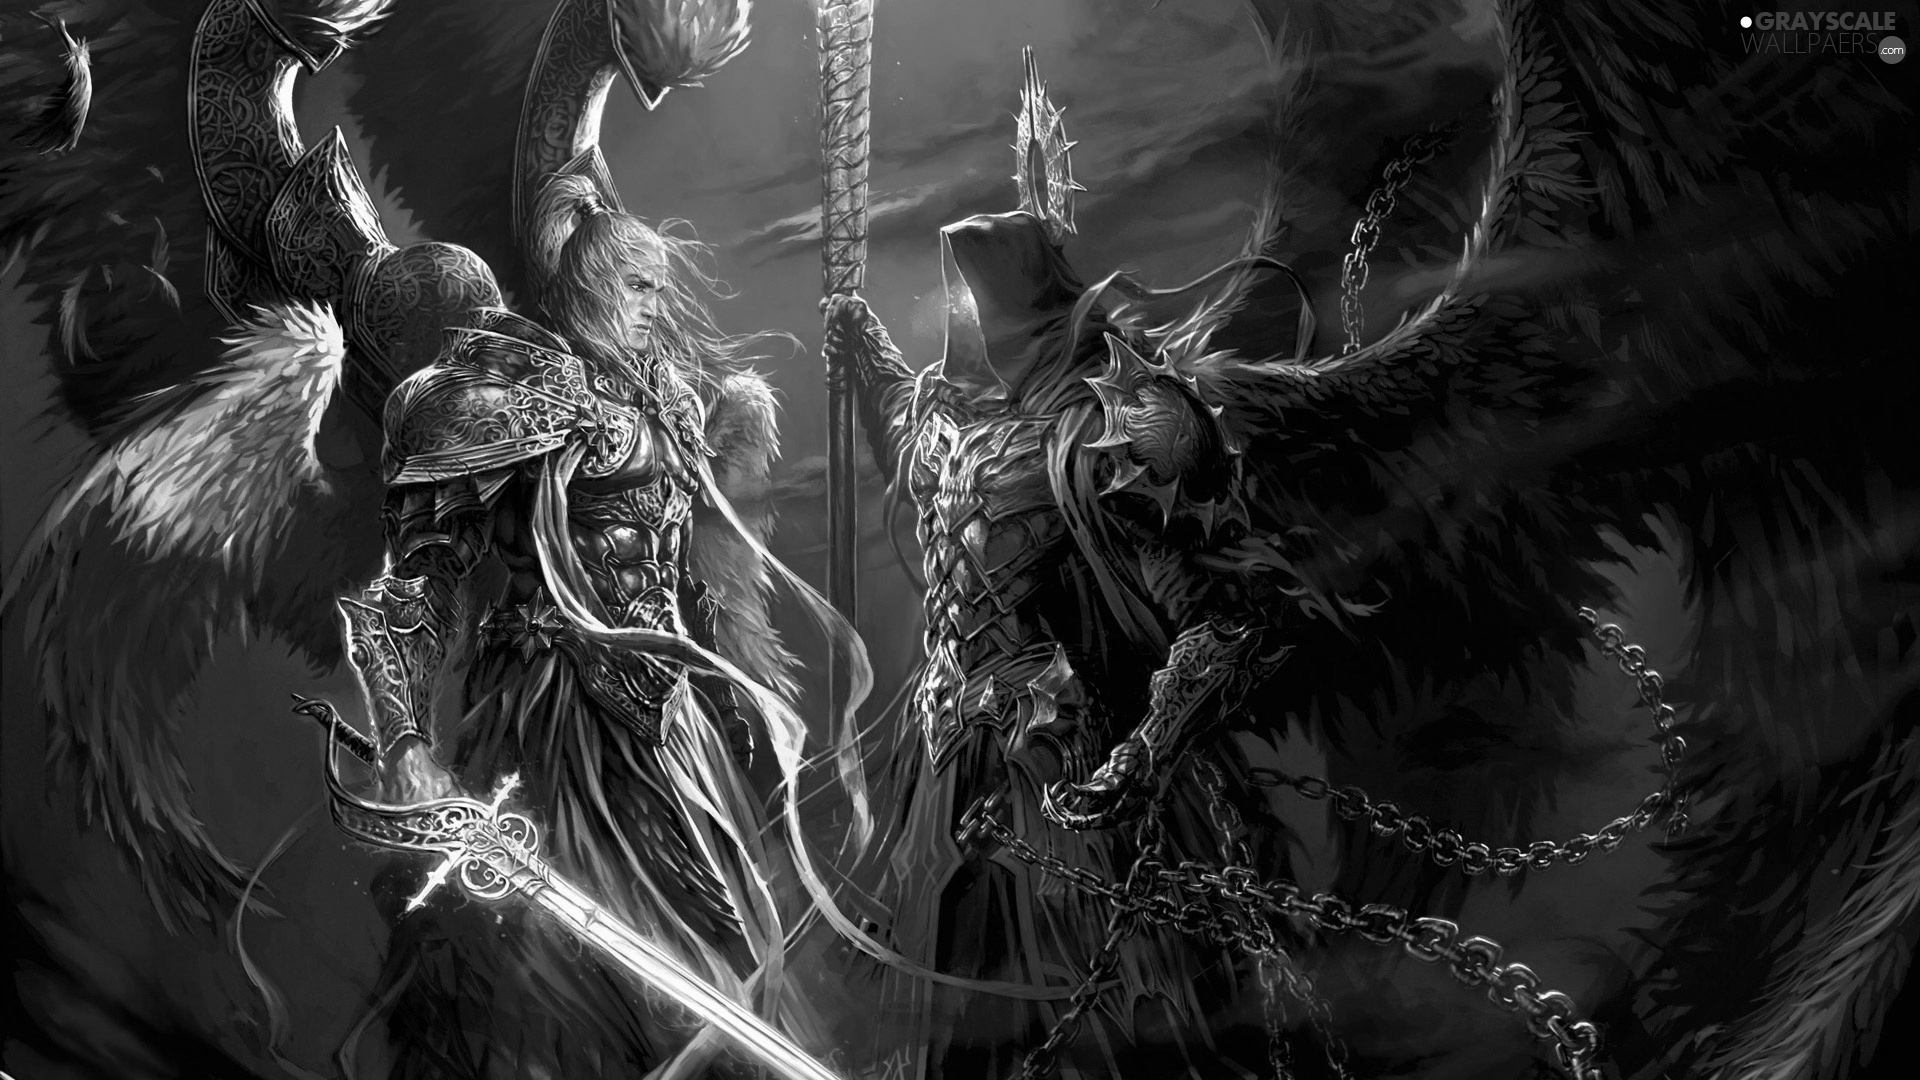 Grayscale Might And Magic Heroes VI Archangel Michael 1920x1080